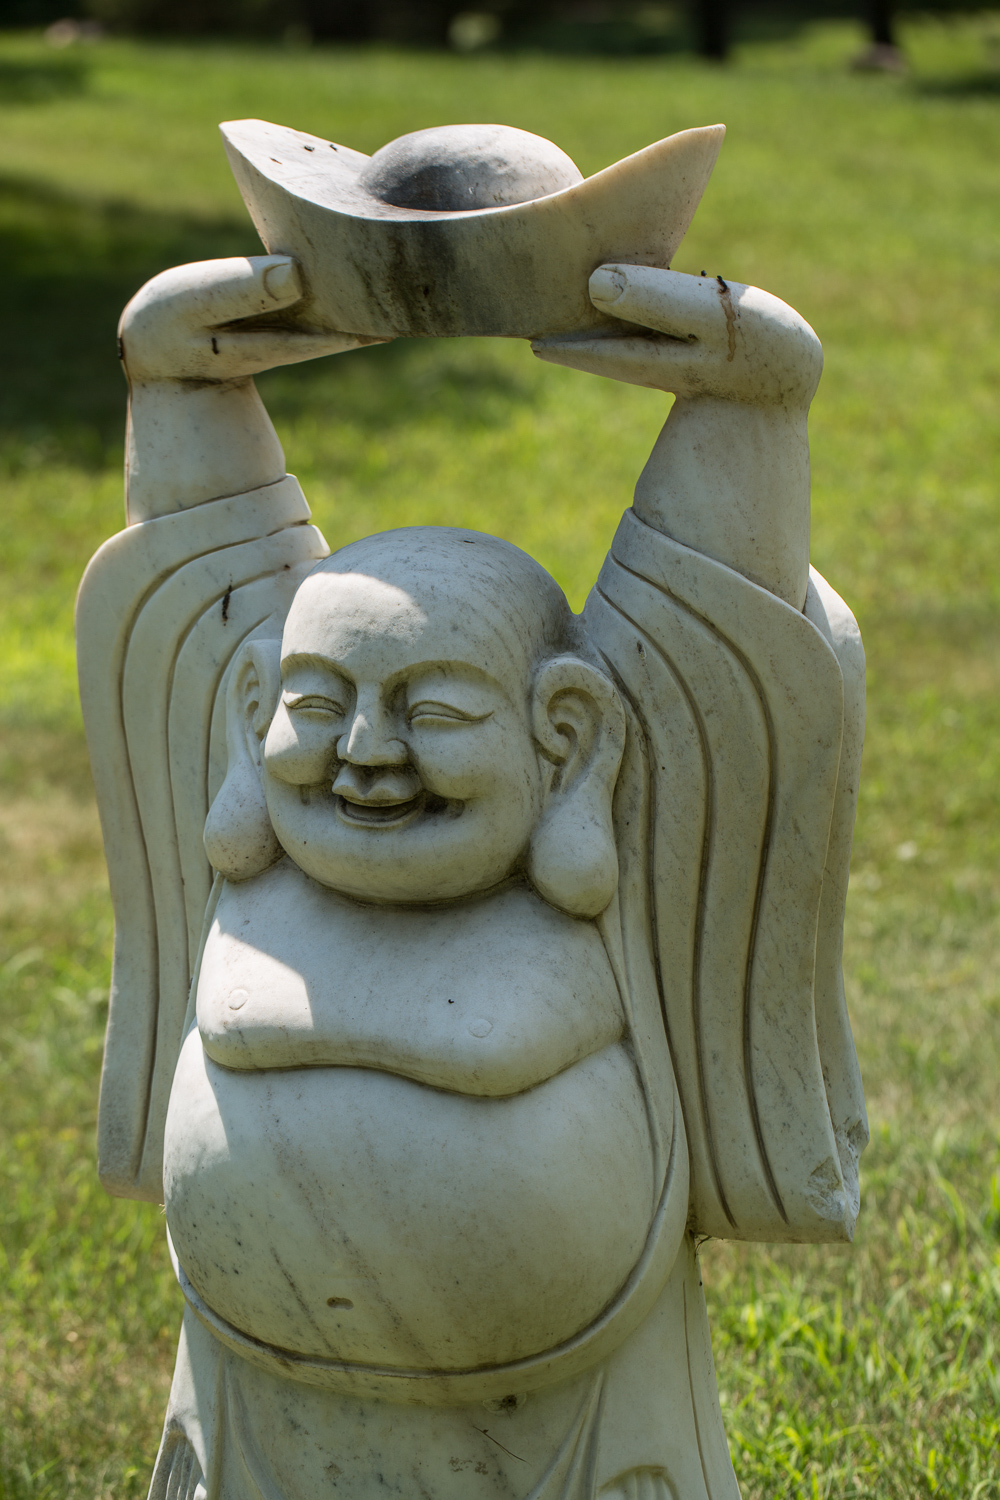 Chinese Sculpture of Welcoming and Happy Buddha